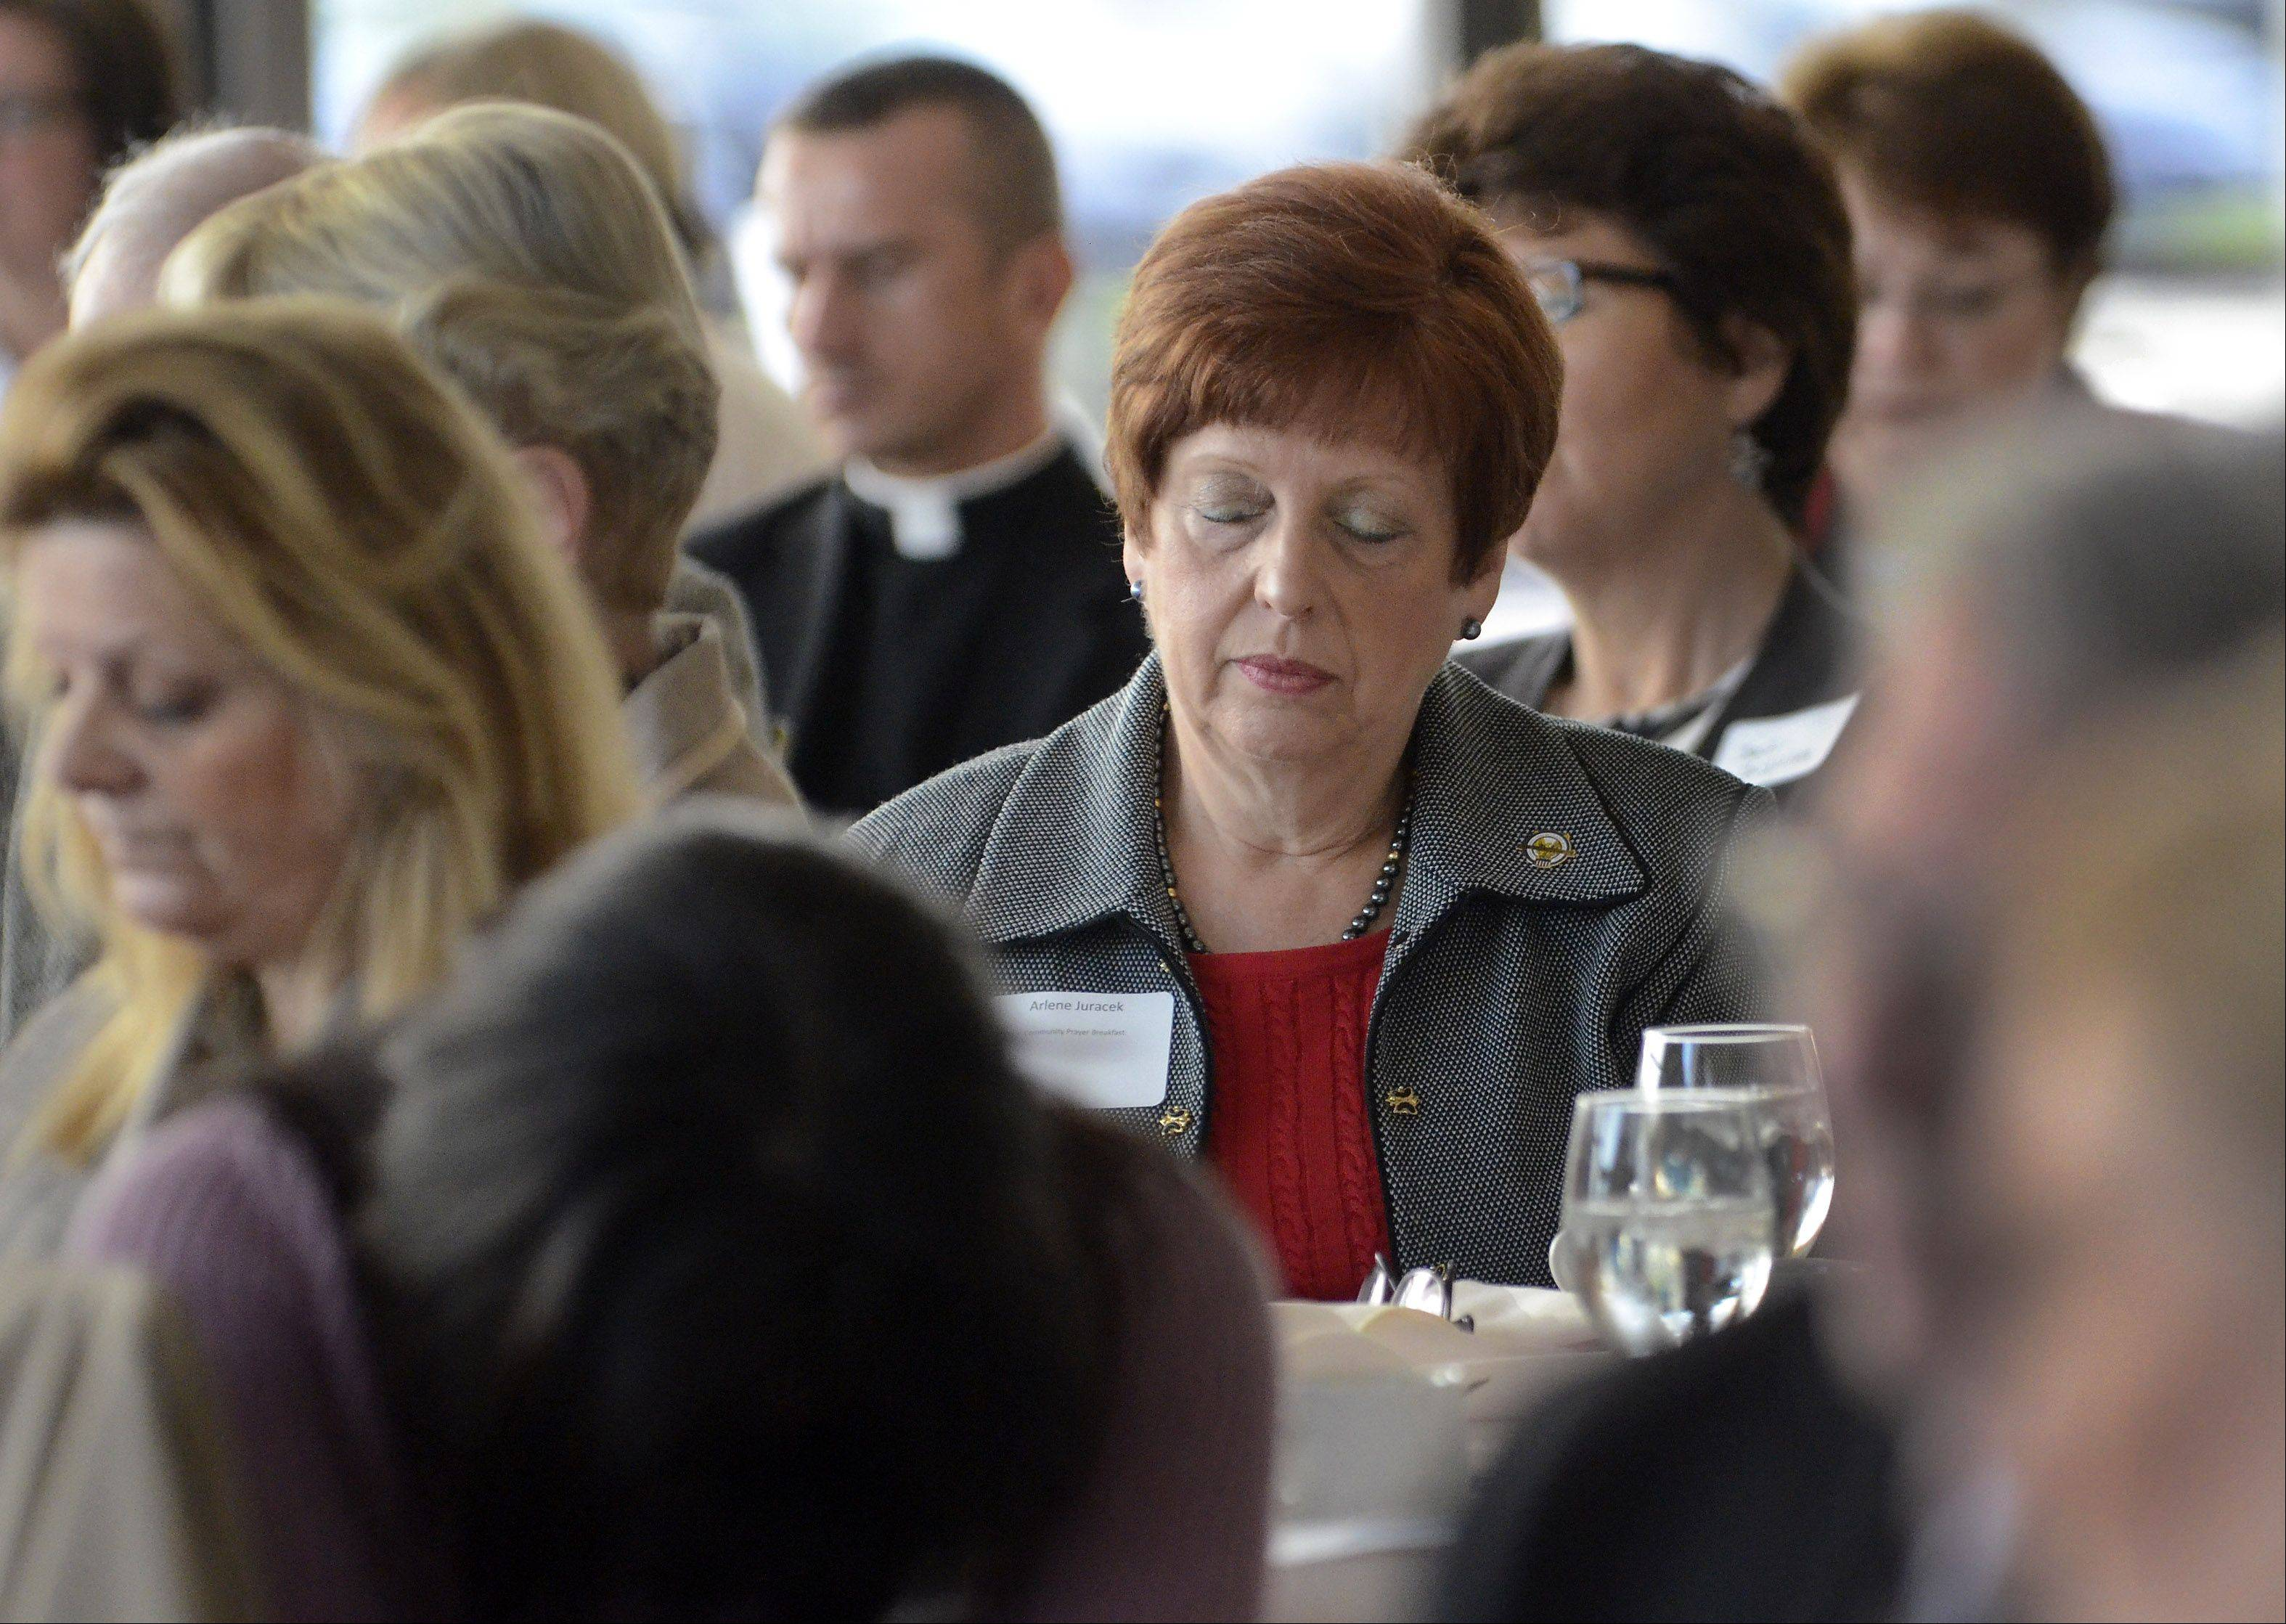 Incoming Mount Prospect Mayor Arlene Juracek prays at the annual Community Prayer Breakfast.